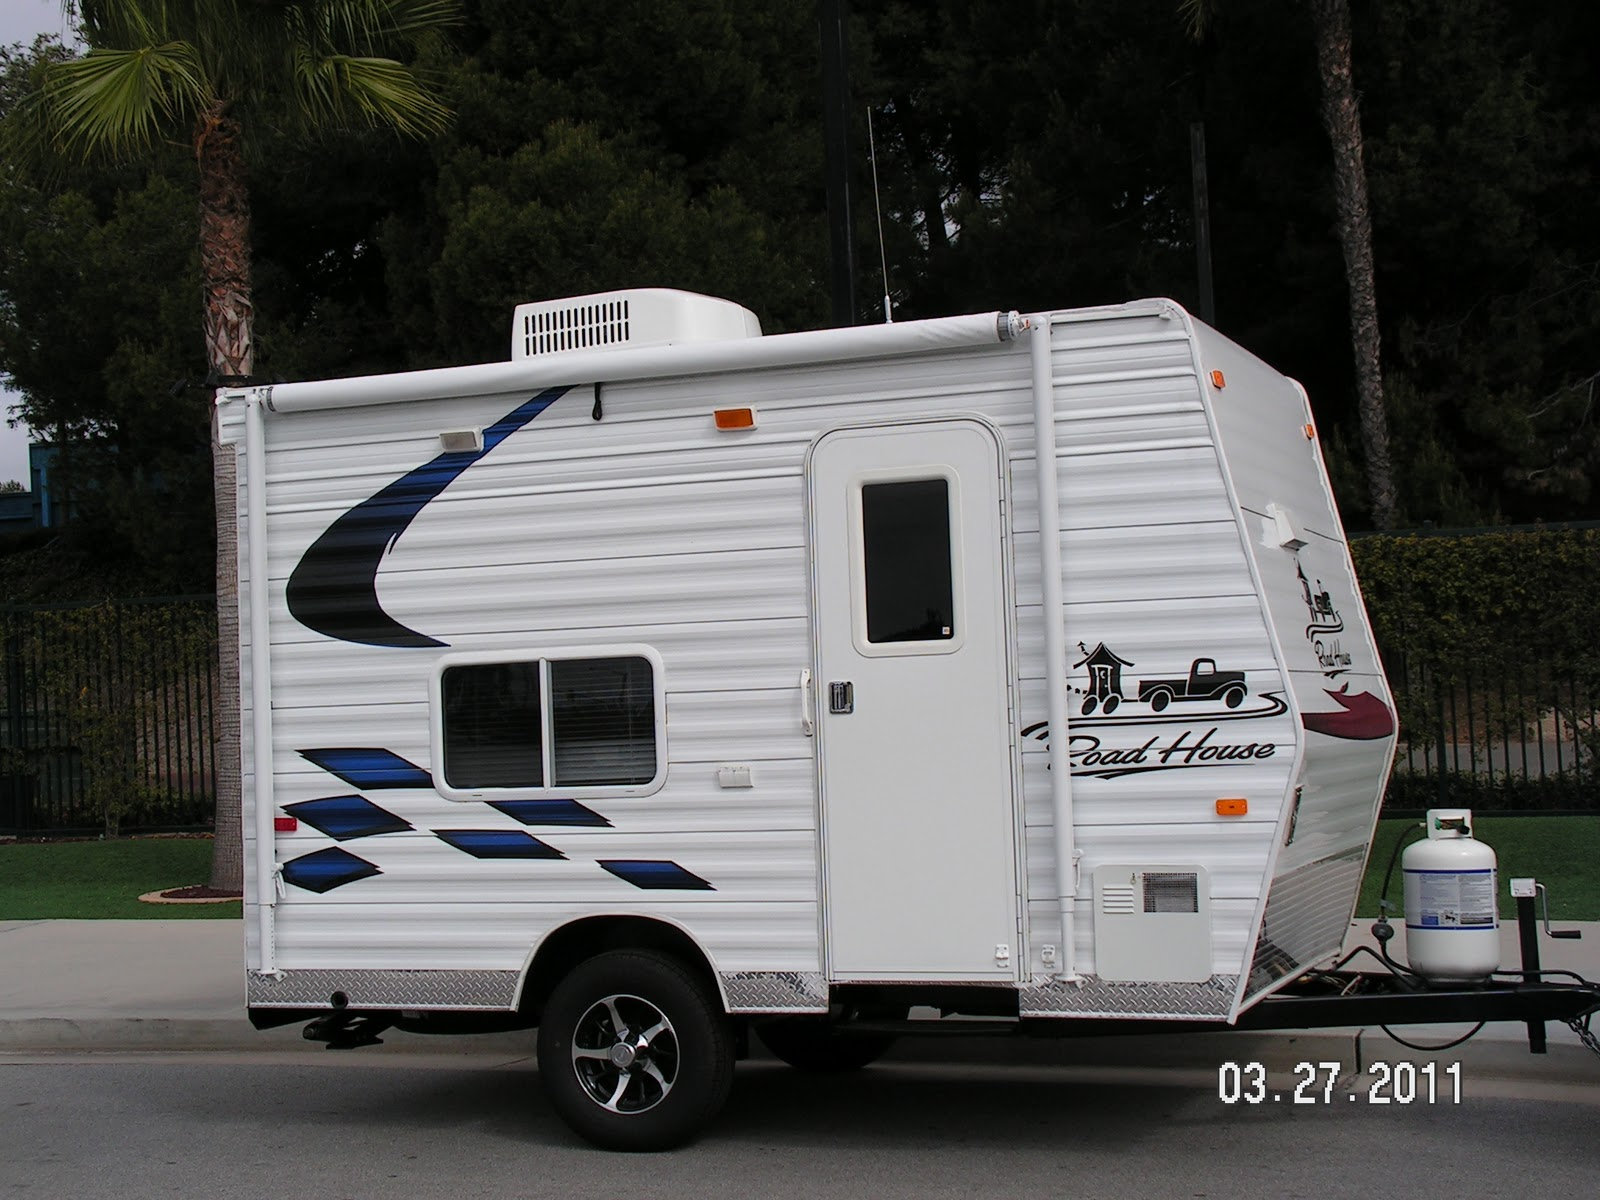 16 Foot Toy Hauler Trailer http://roadhouserv.blogspot.com/2011/04/new-stubby-16-foot-toyhauler.html